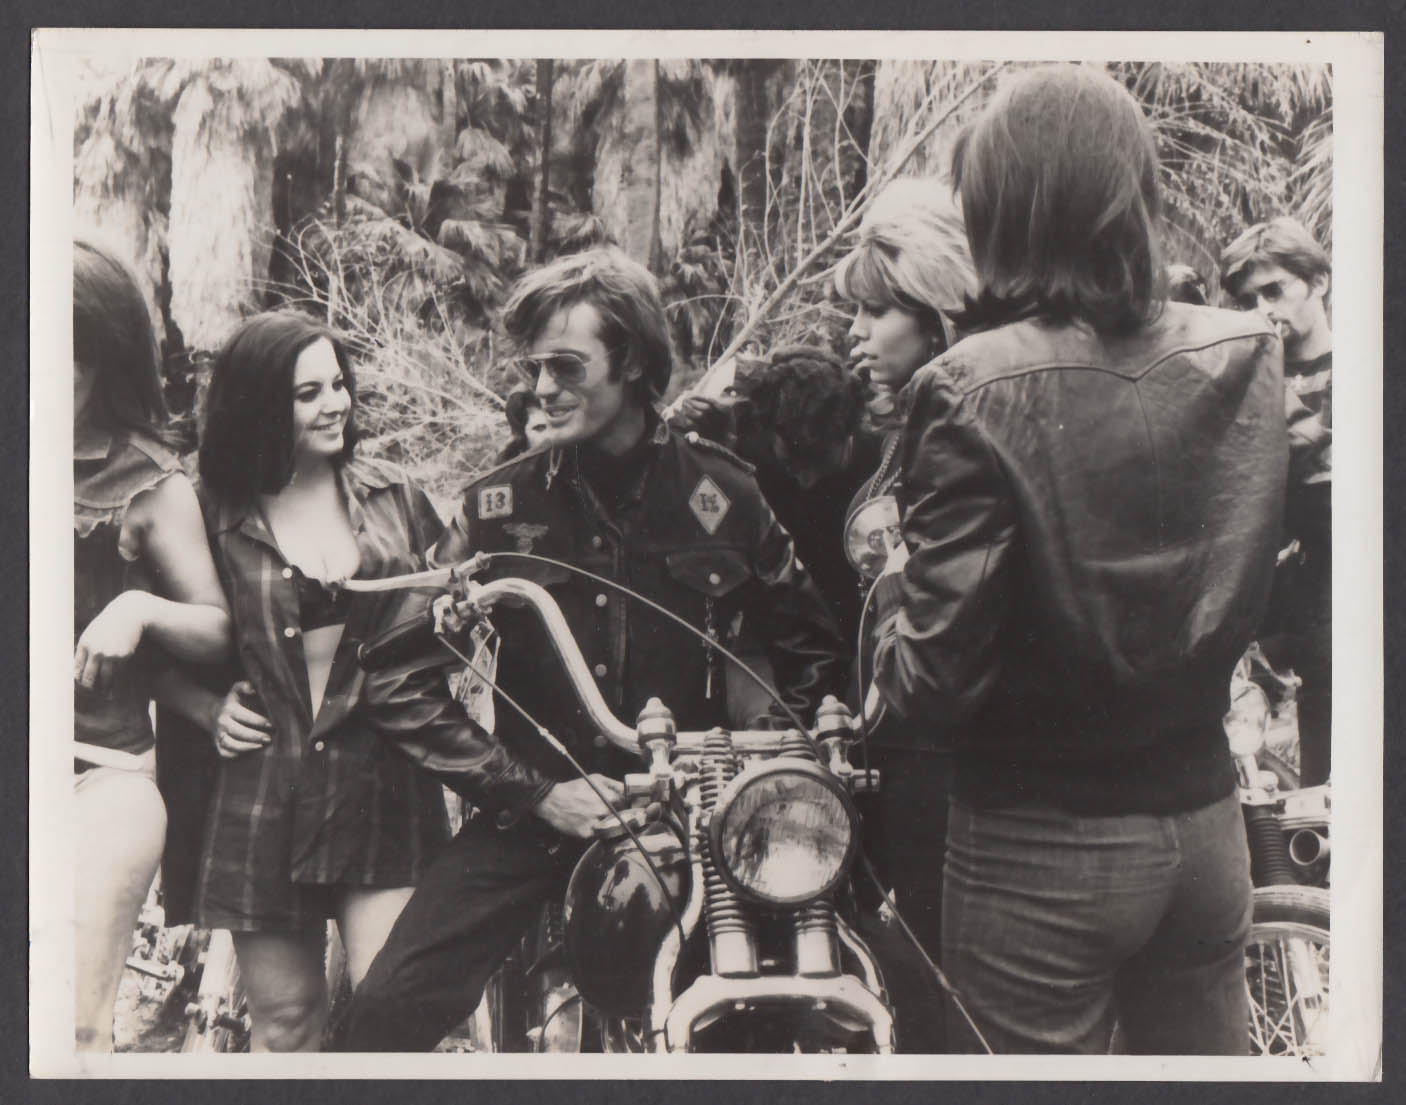 Peter Fonda in The Wild Angels 8x10 publicity photo 1966